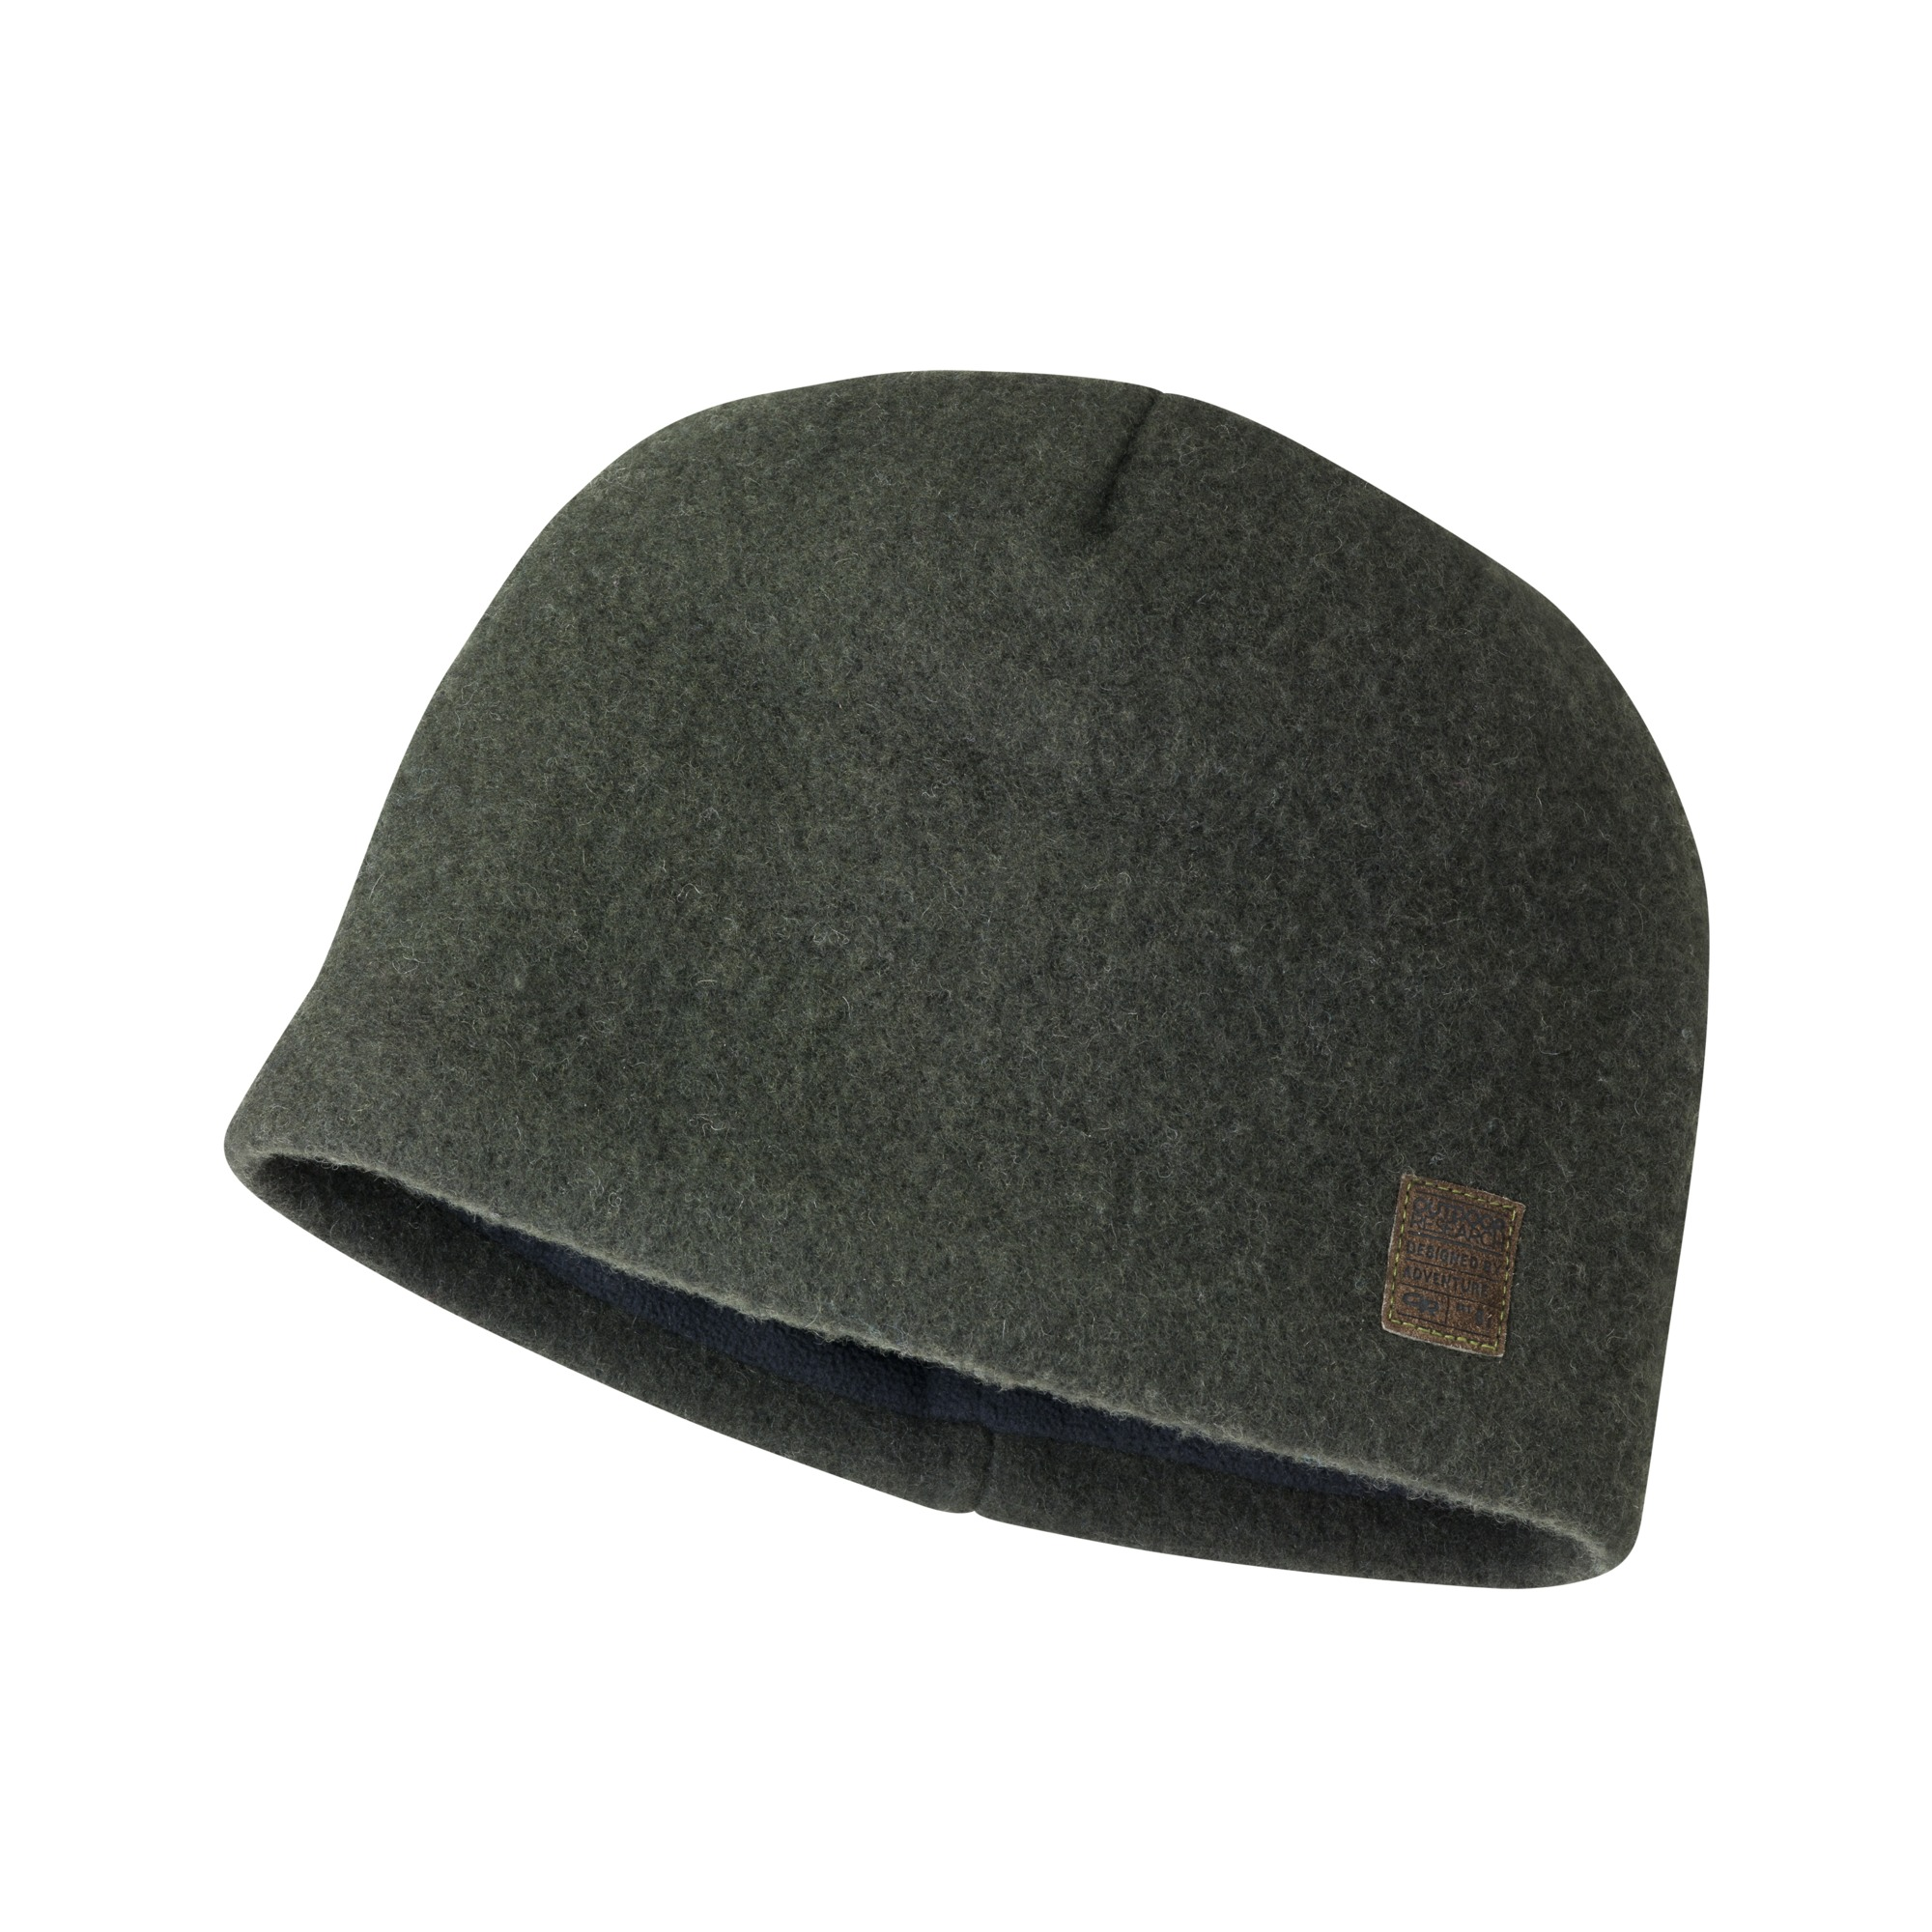 san francisco 49fd6 8e445 ... Whiskey Peak Beanie™ - evergreen Outdoor Research ...